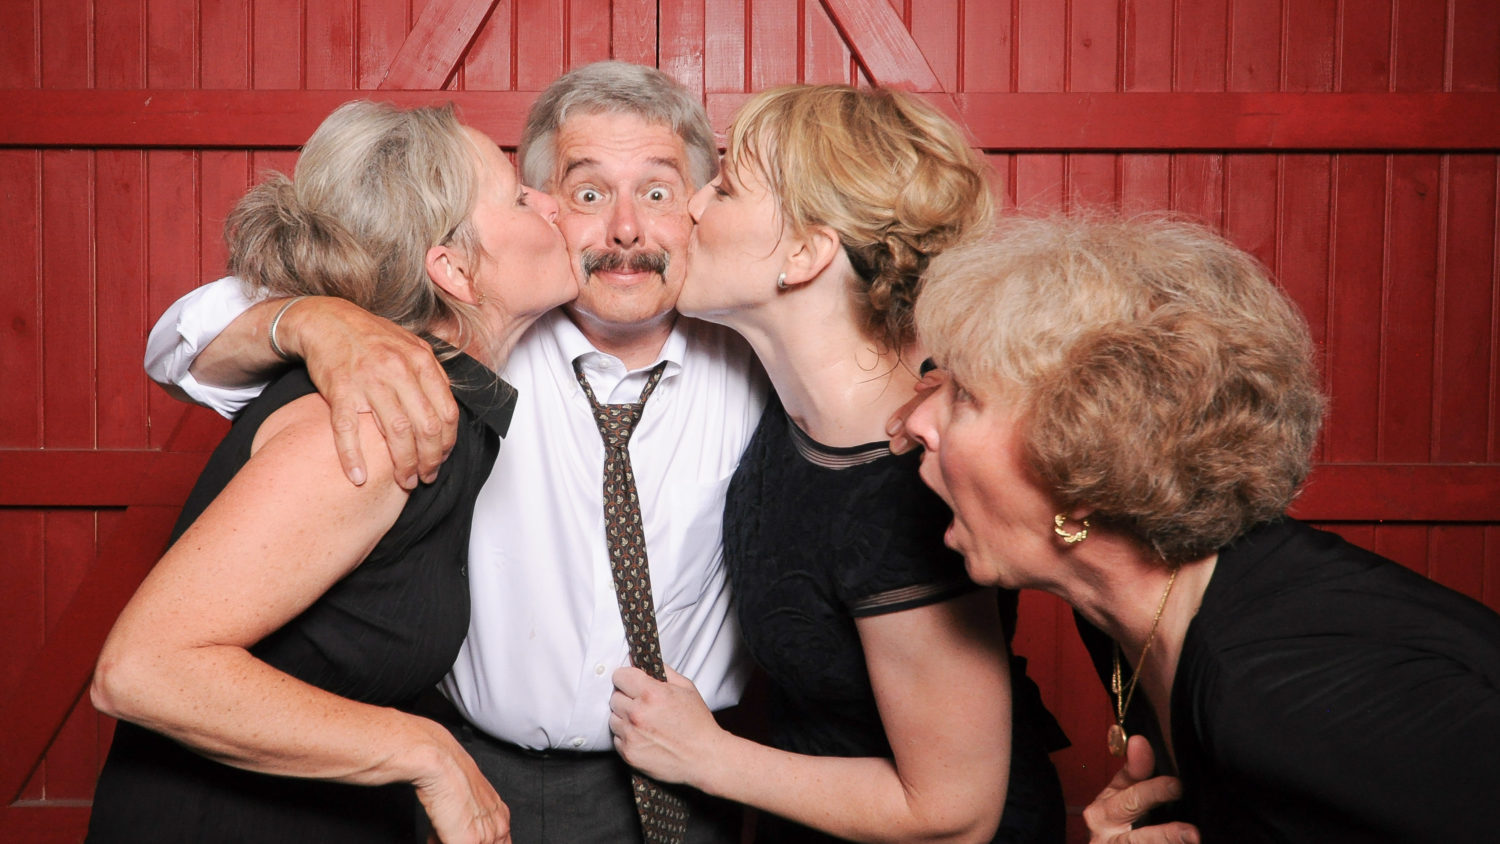 Funny photobooth kissing photos